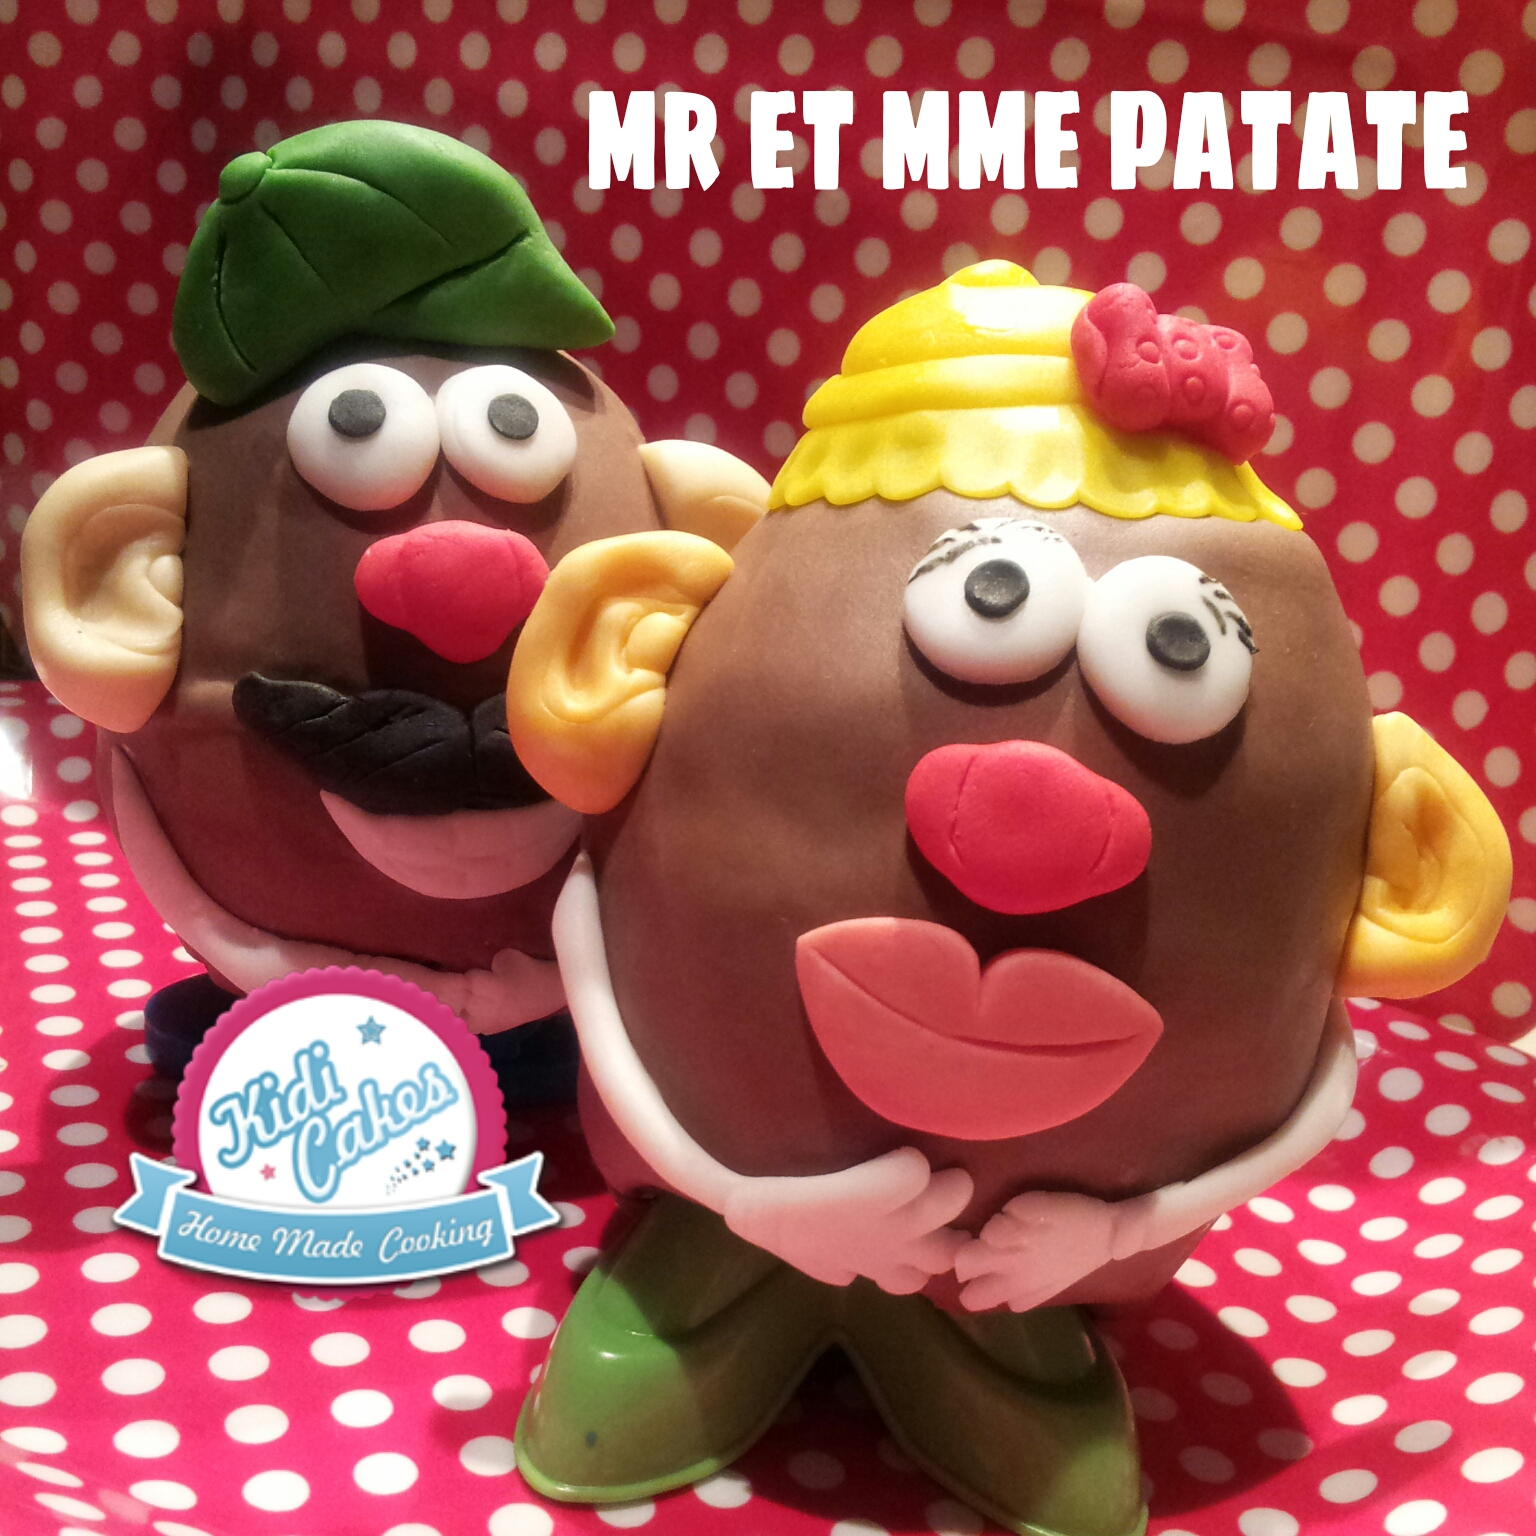 G teau mr et mme patate toy story materiel patisserie creative cake design - Monsieur patate toy story ...